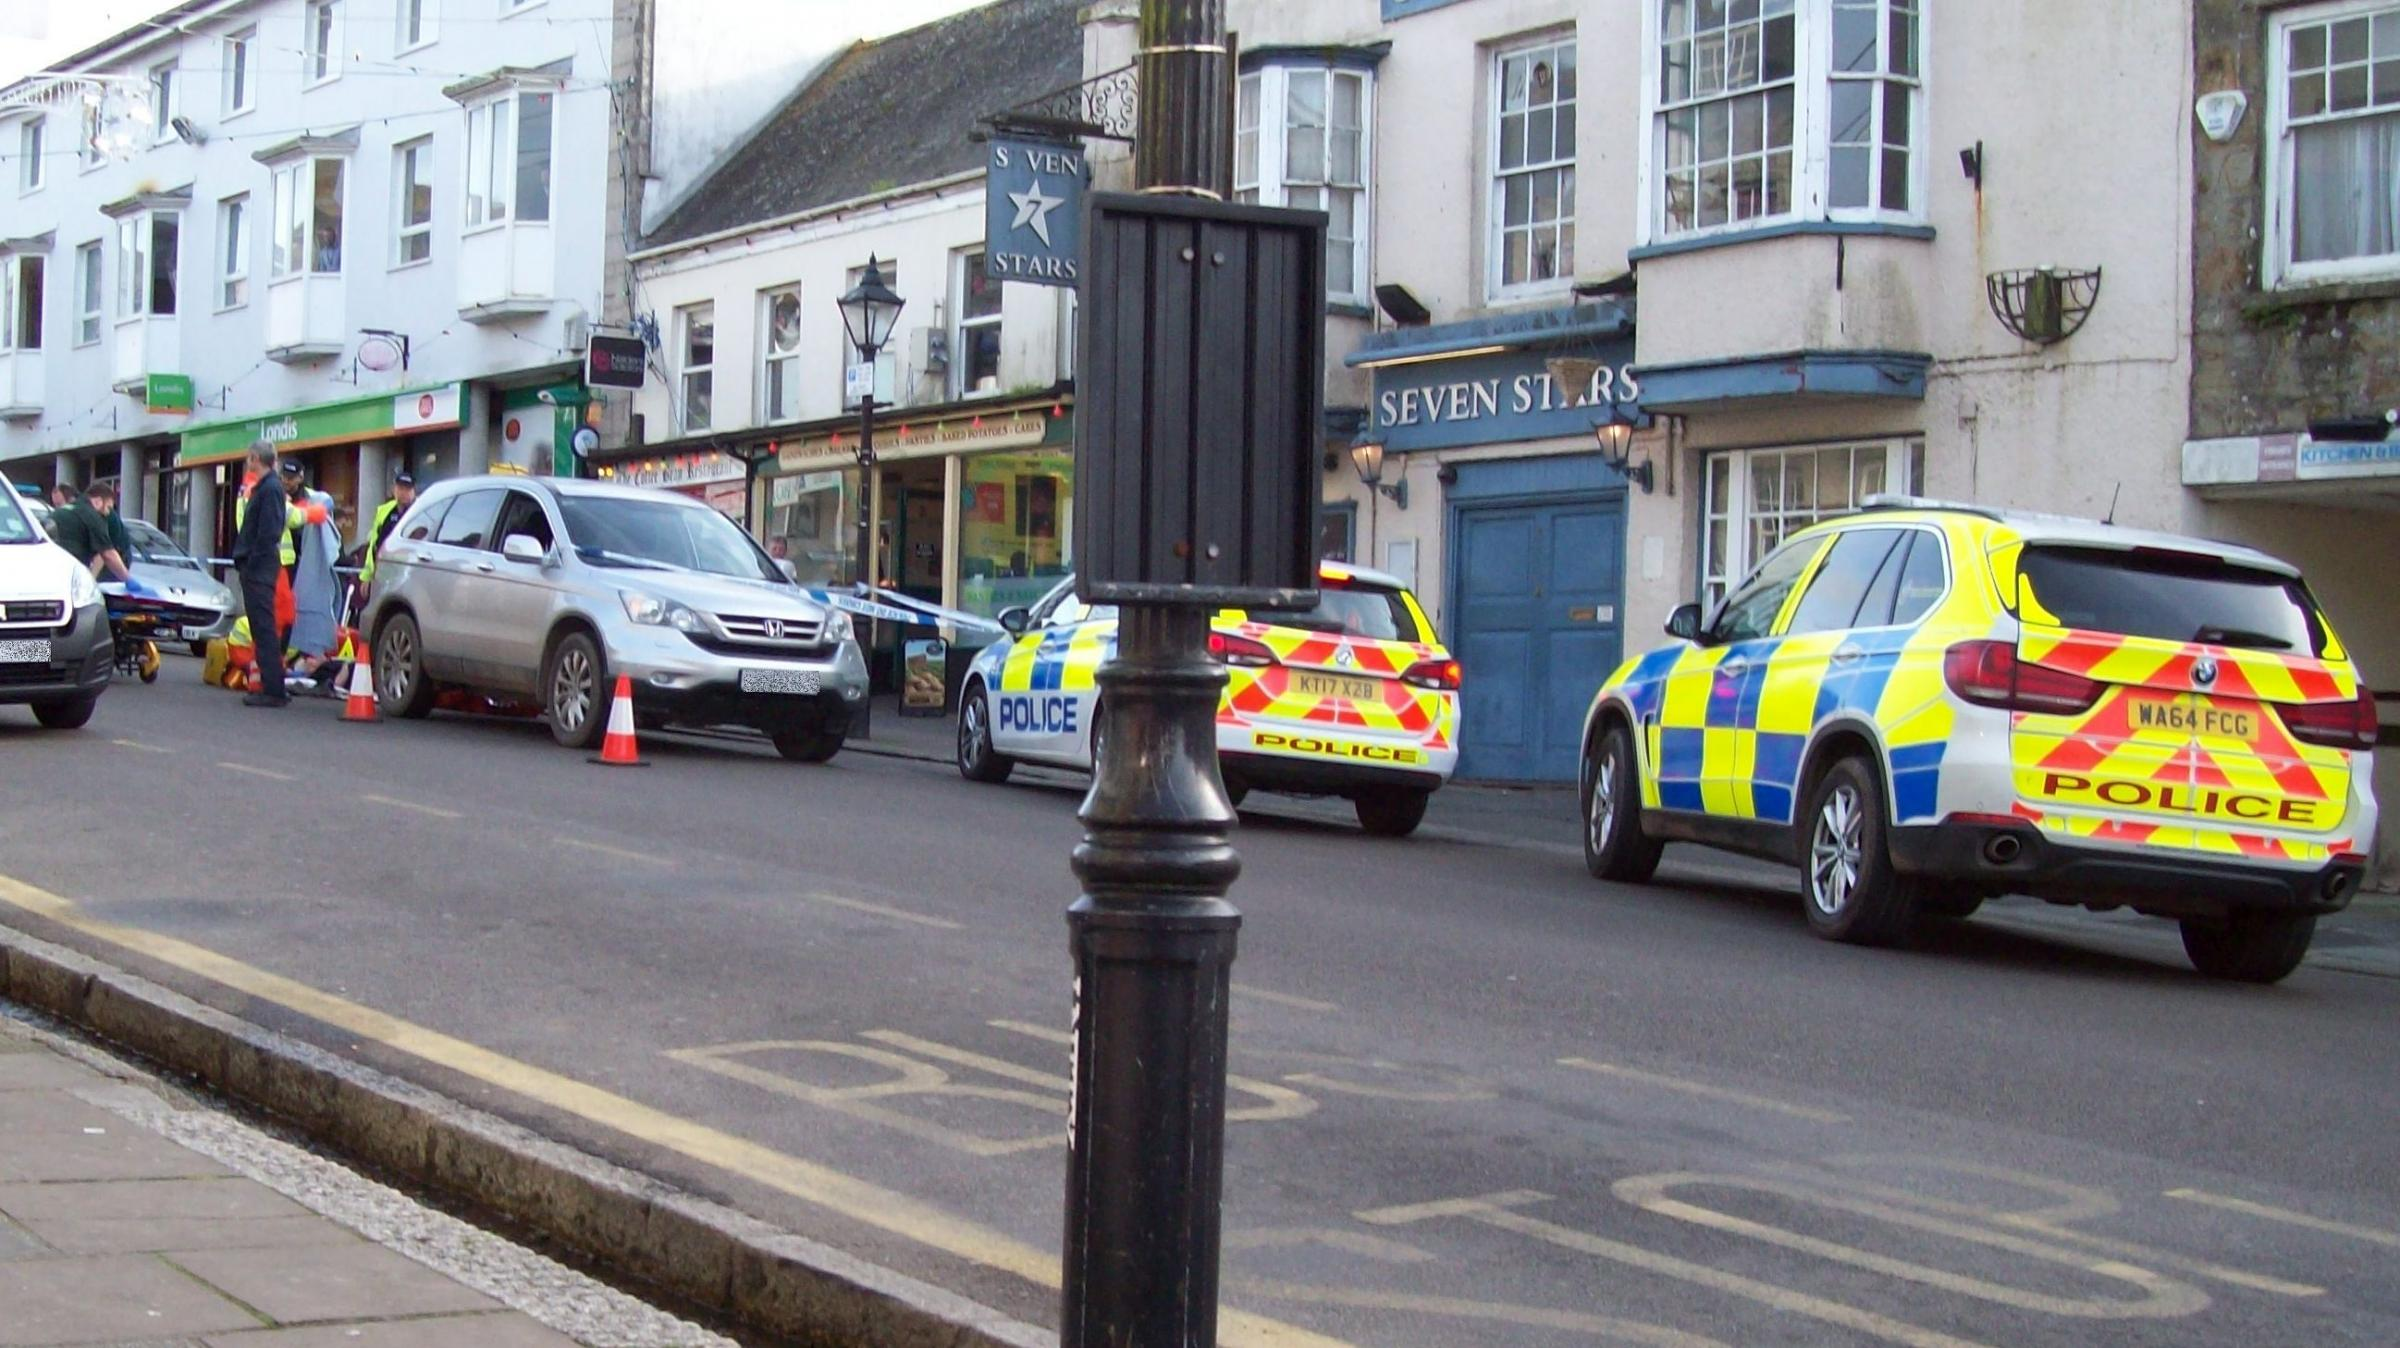 Emergency services in Helston this lunchtime